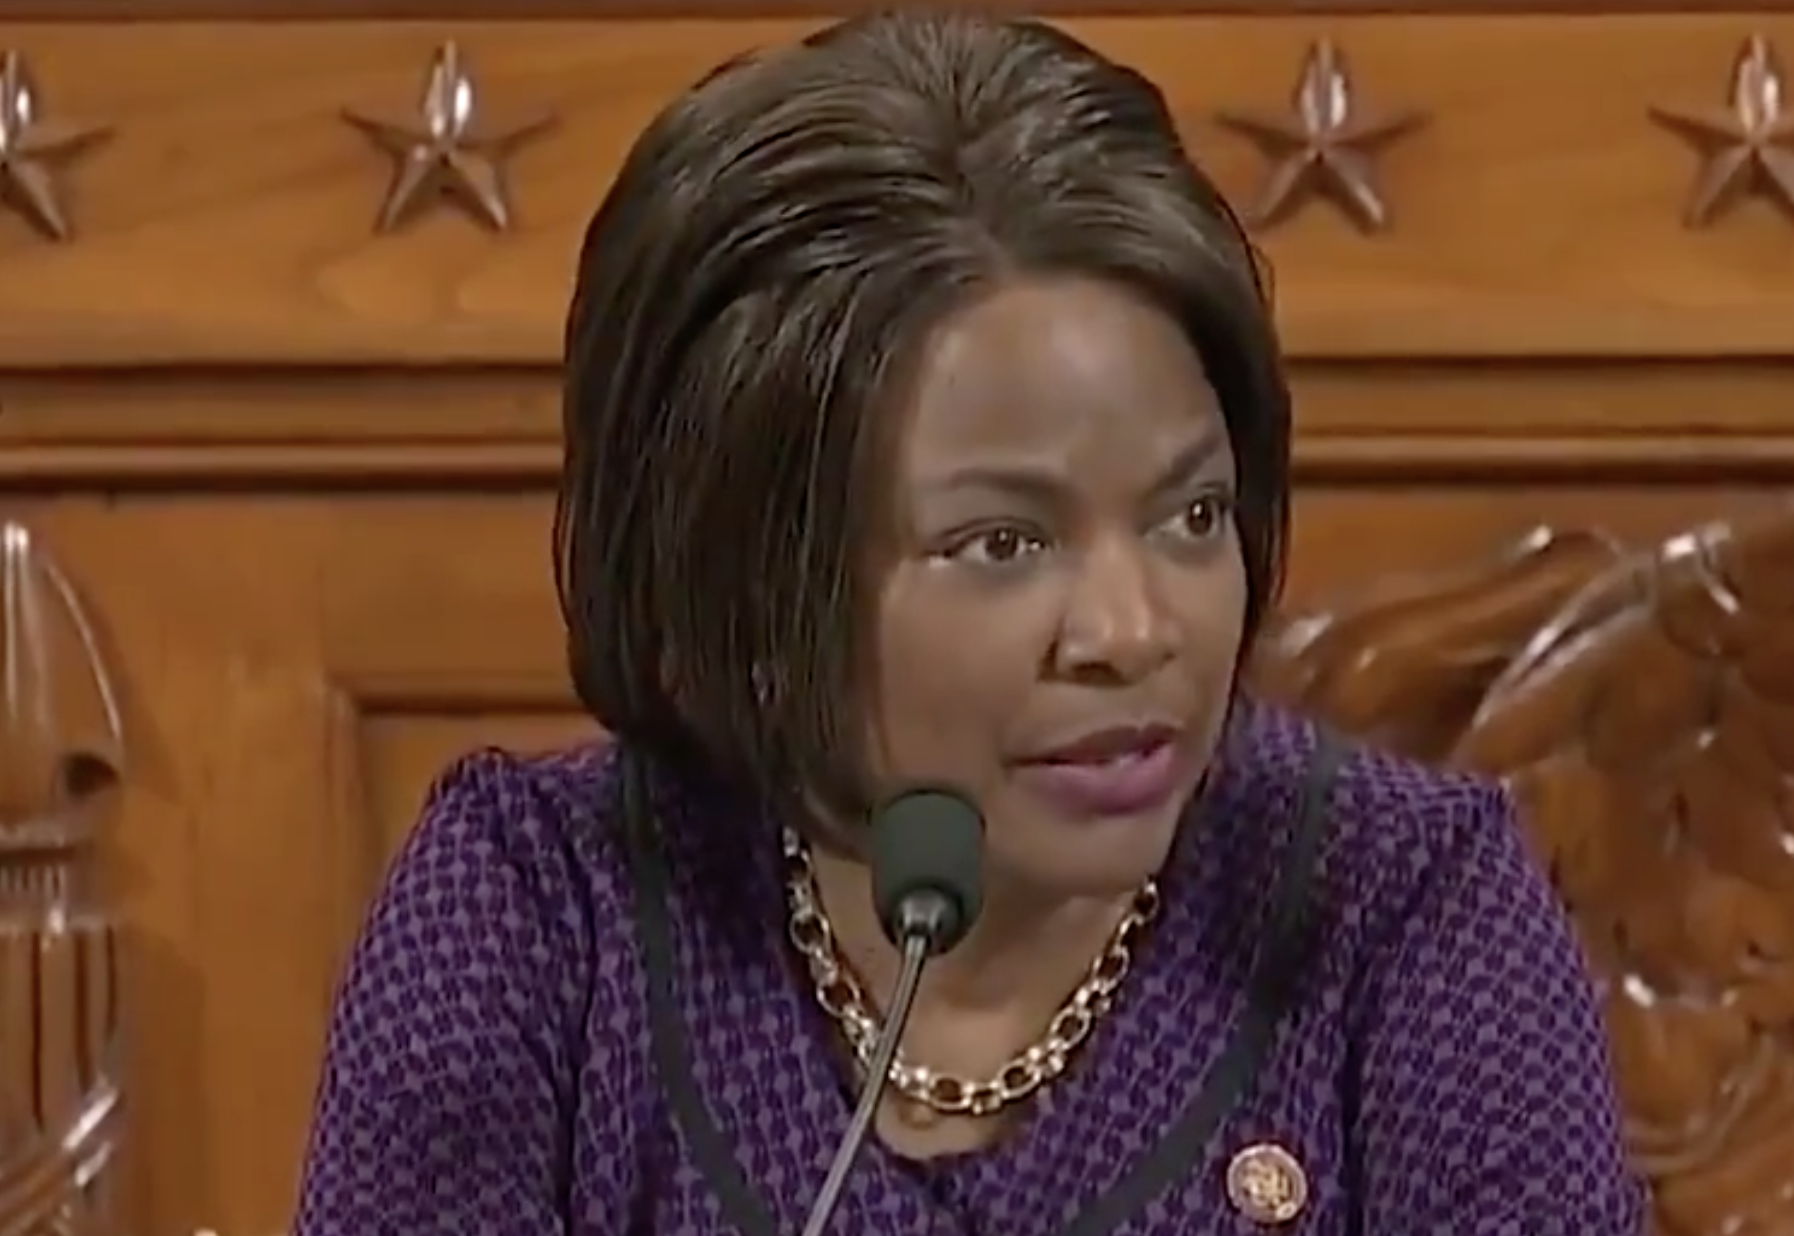 Val Demings says she loves the Pledge of Allegiance,' but votes against reciting it